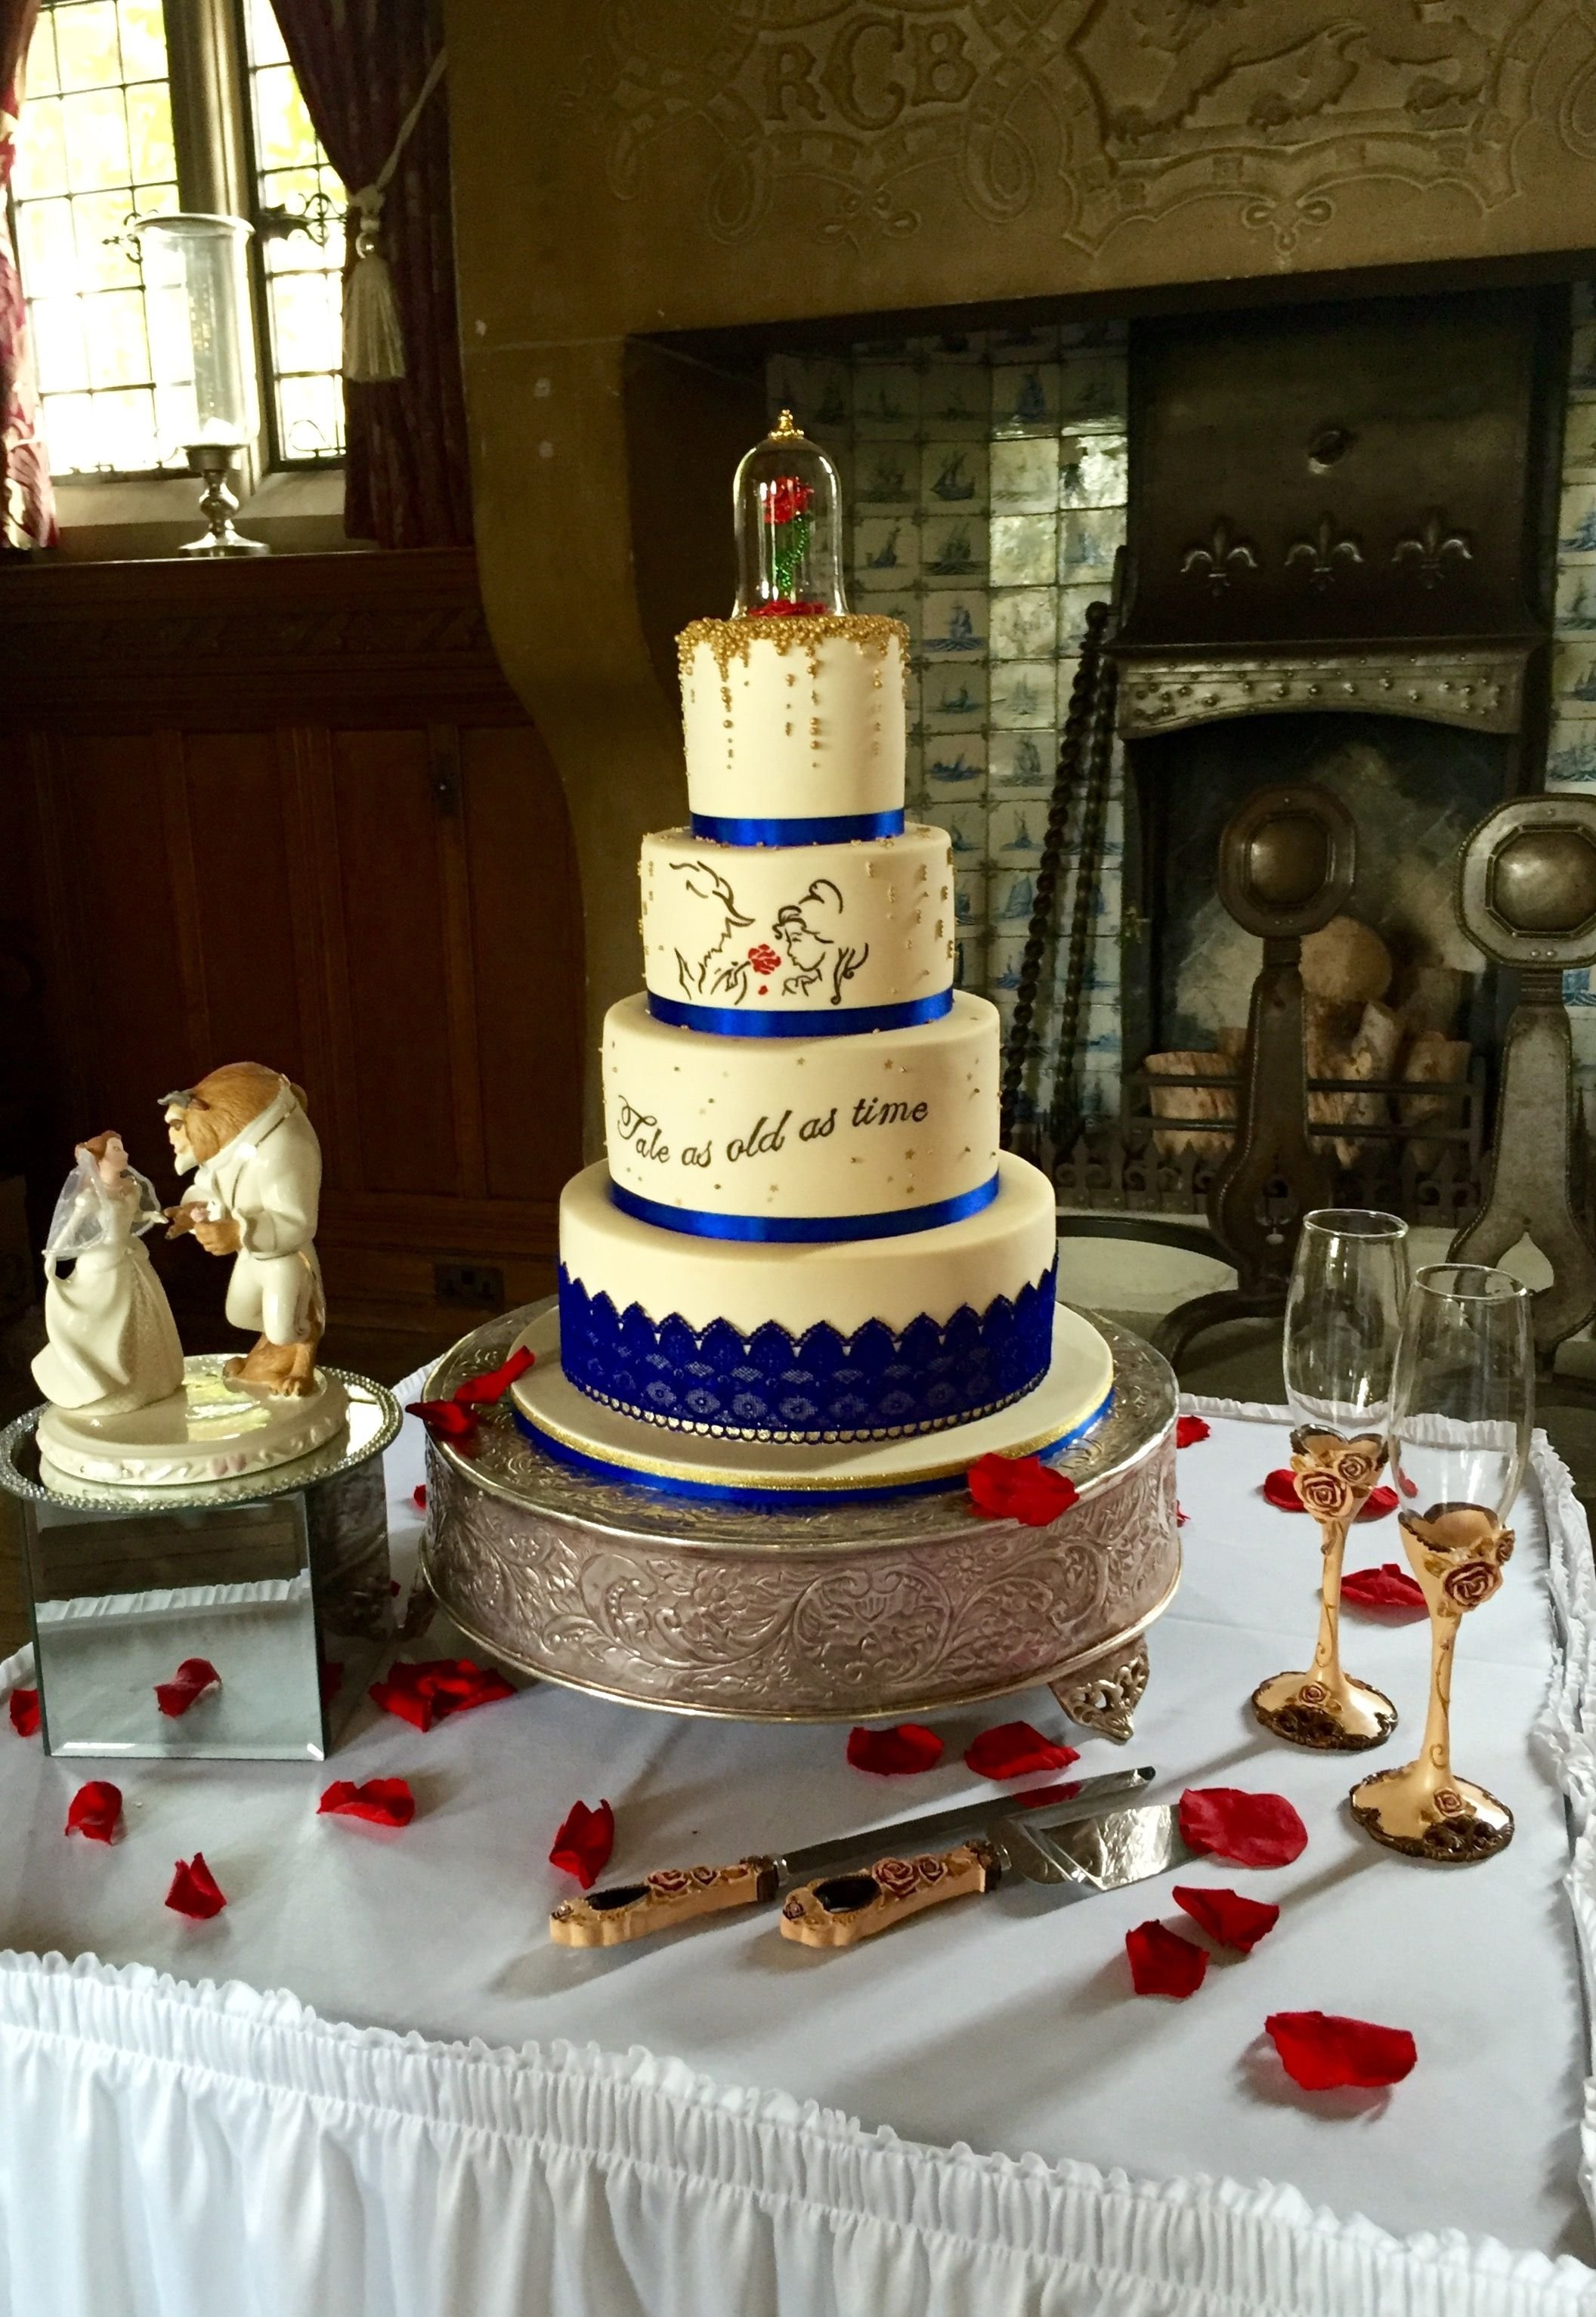 10 Gorgeous Beauty And The Beast Wedding Theme Ideas beauty and the beast wedding cake today for johnson and clark